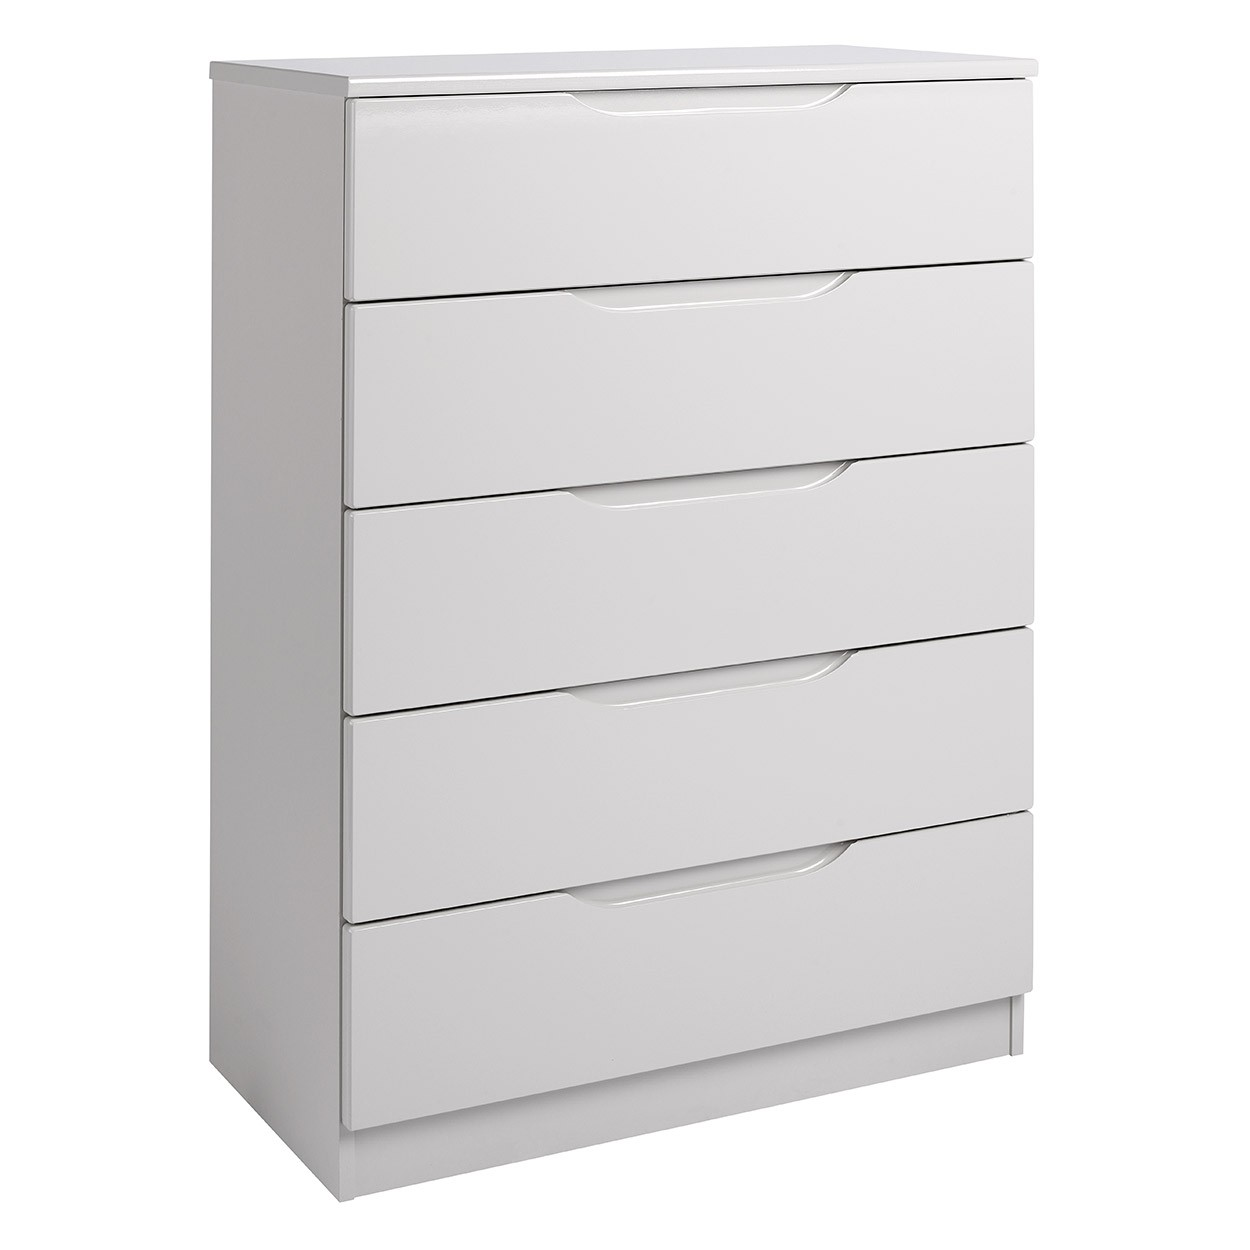 Cashmere Grey High Gloss 5 Drawer Chest